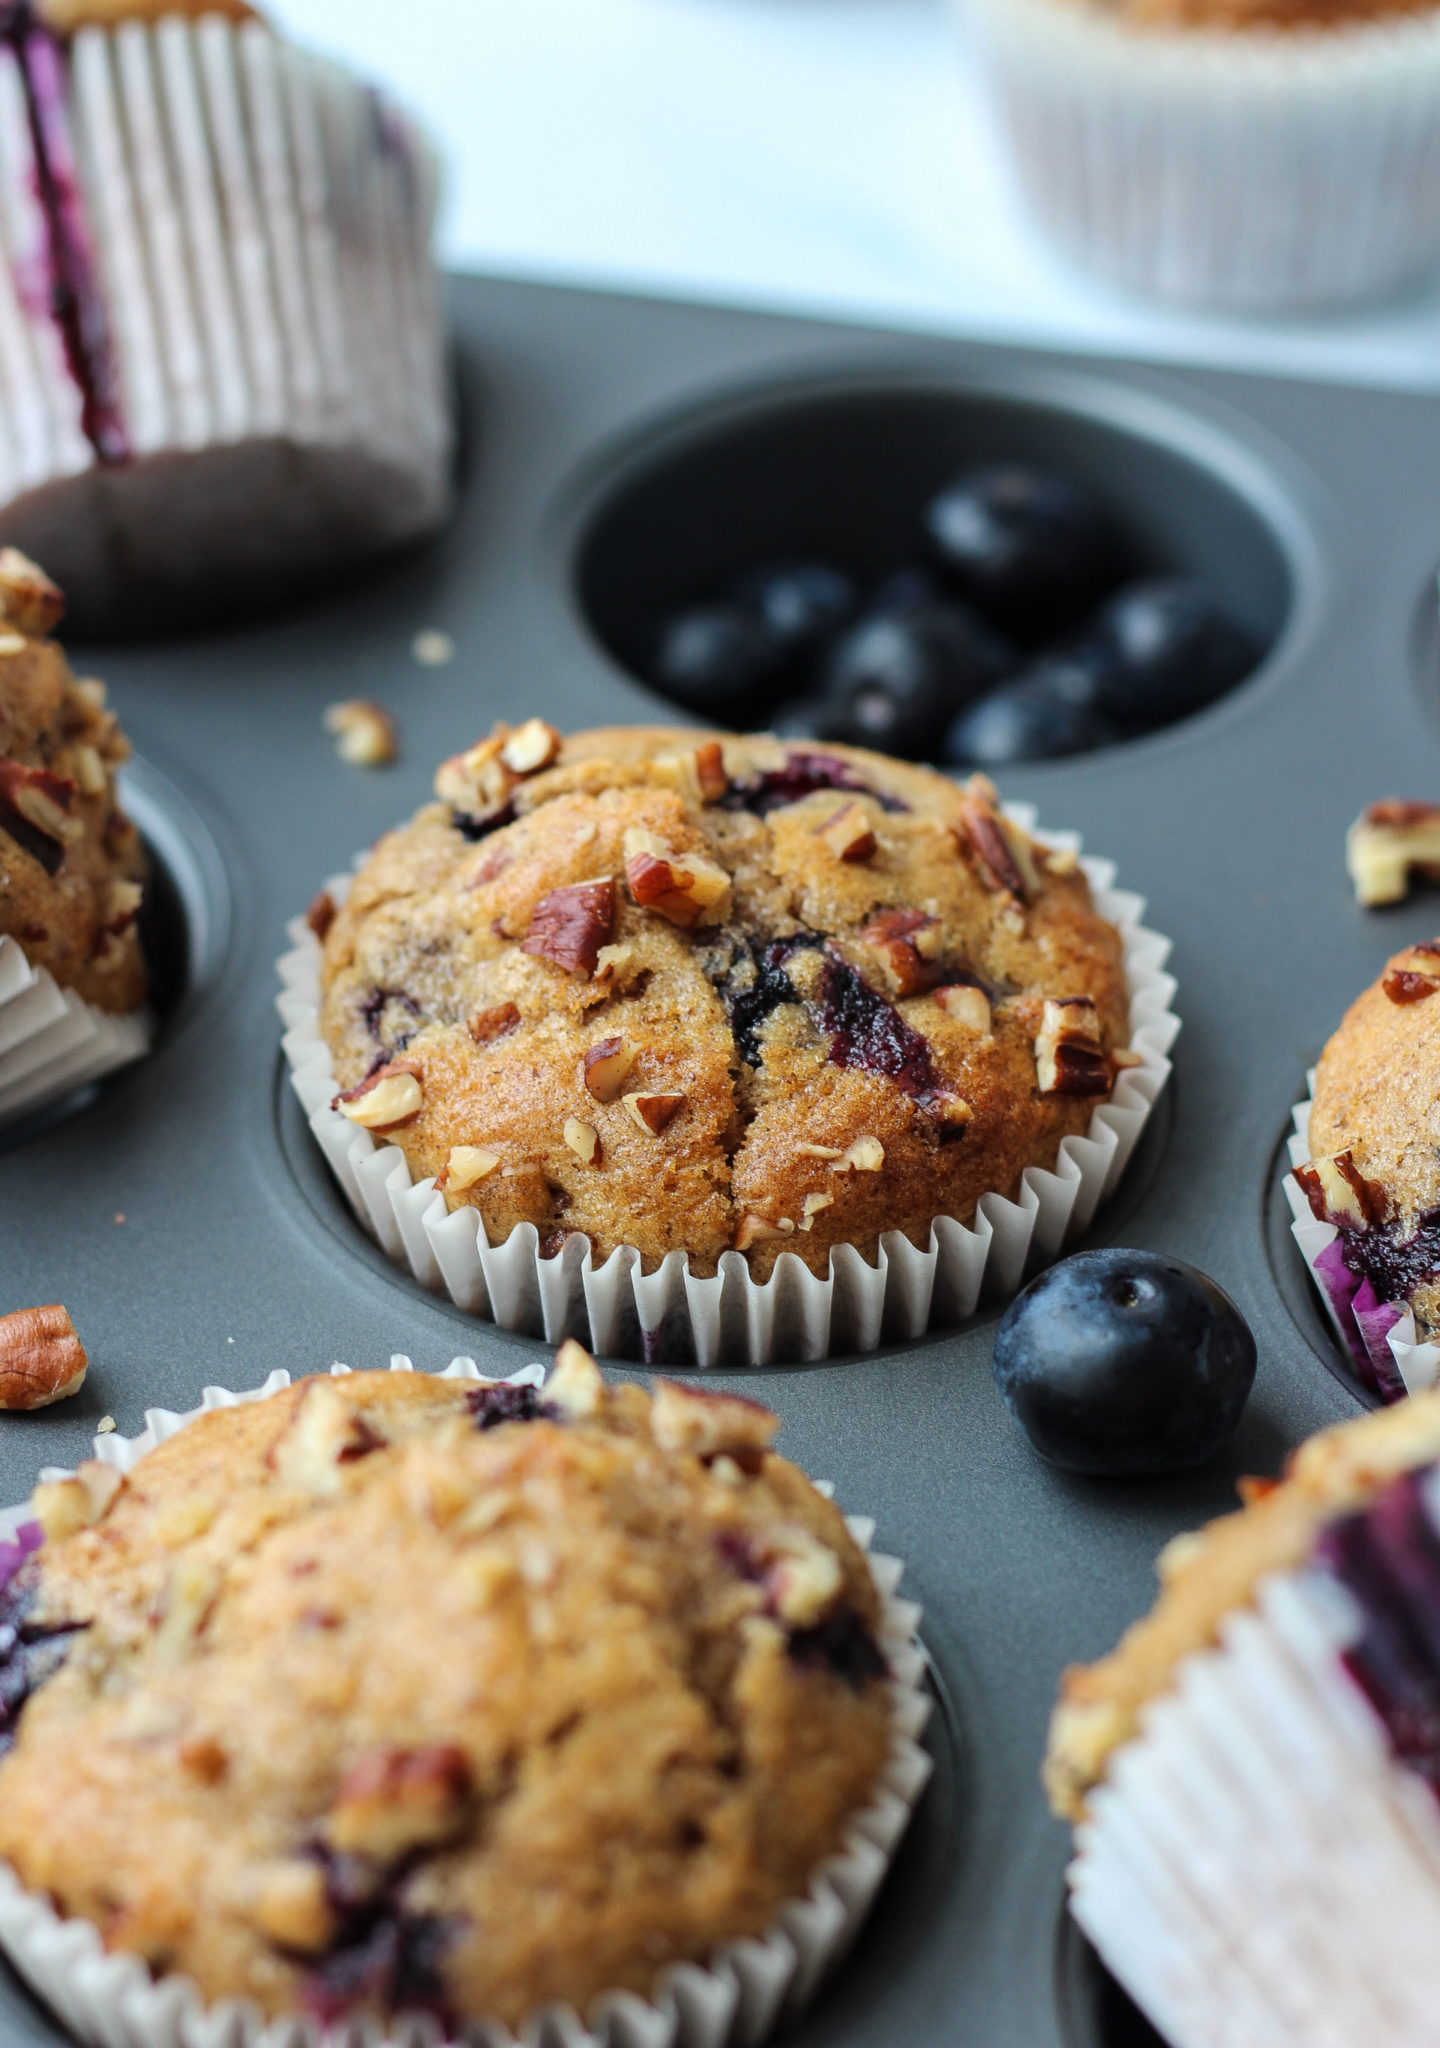 close up of blueberry nut muffin in a muffin tray